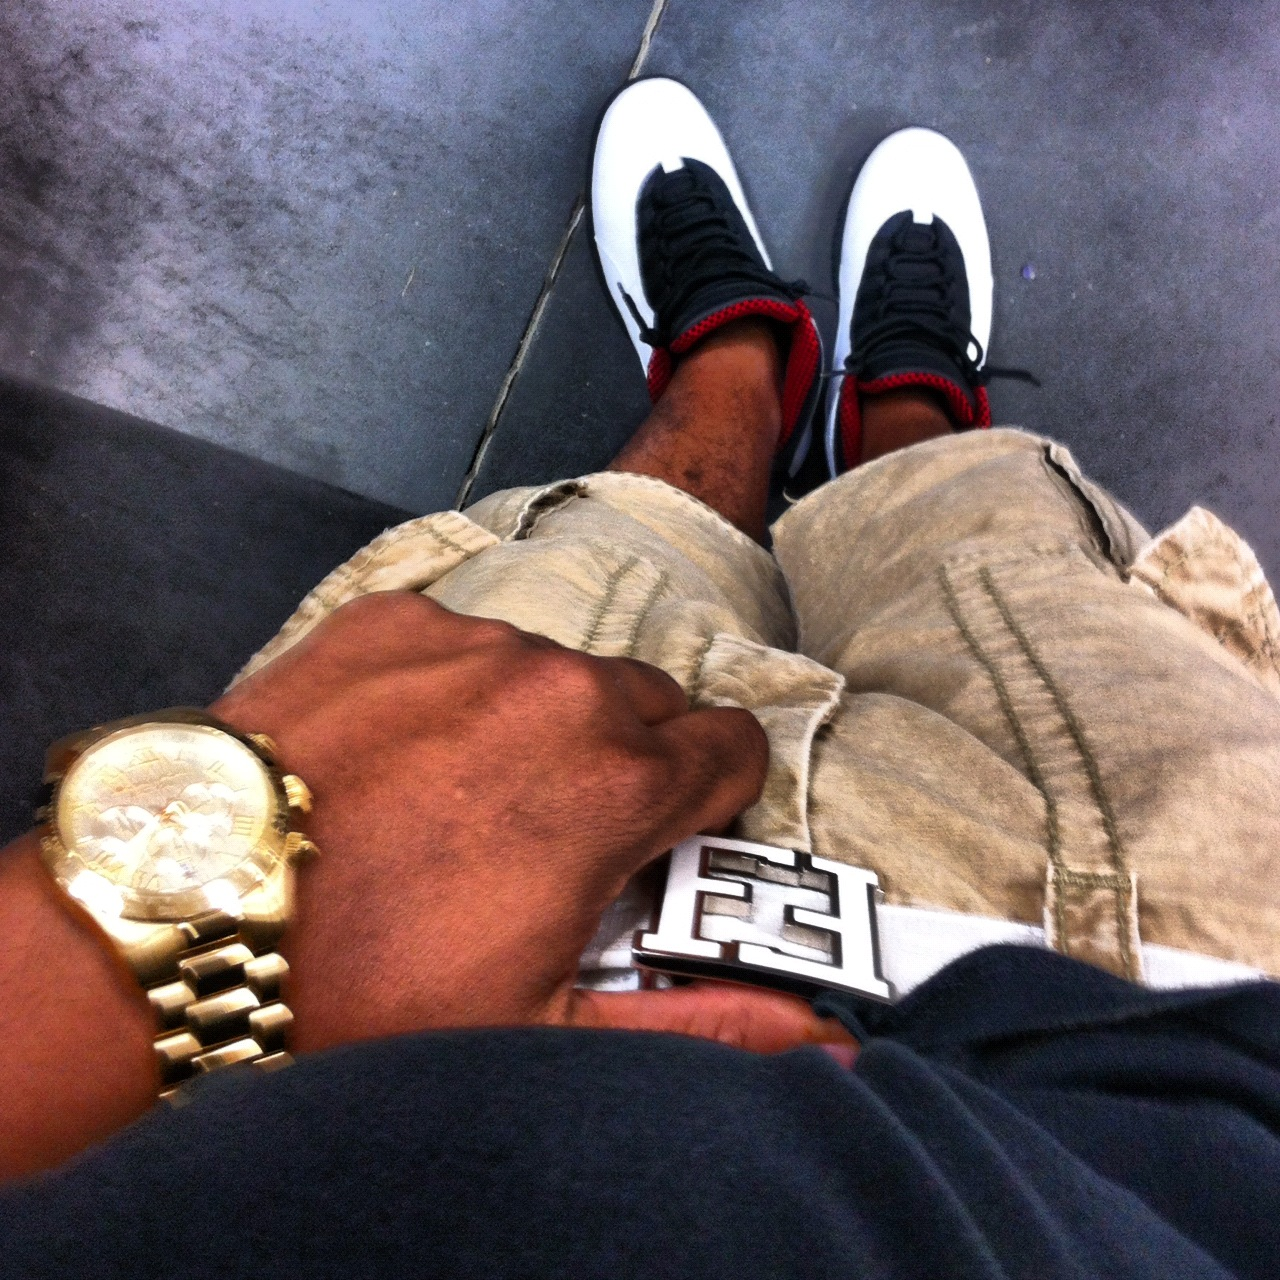 true-real-michael-kors-watch-fendi-belt-chicago-bulls-jordan-10